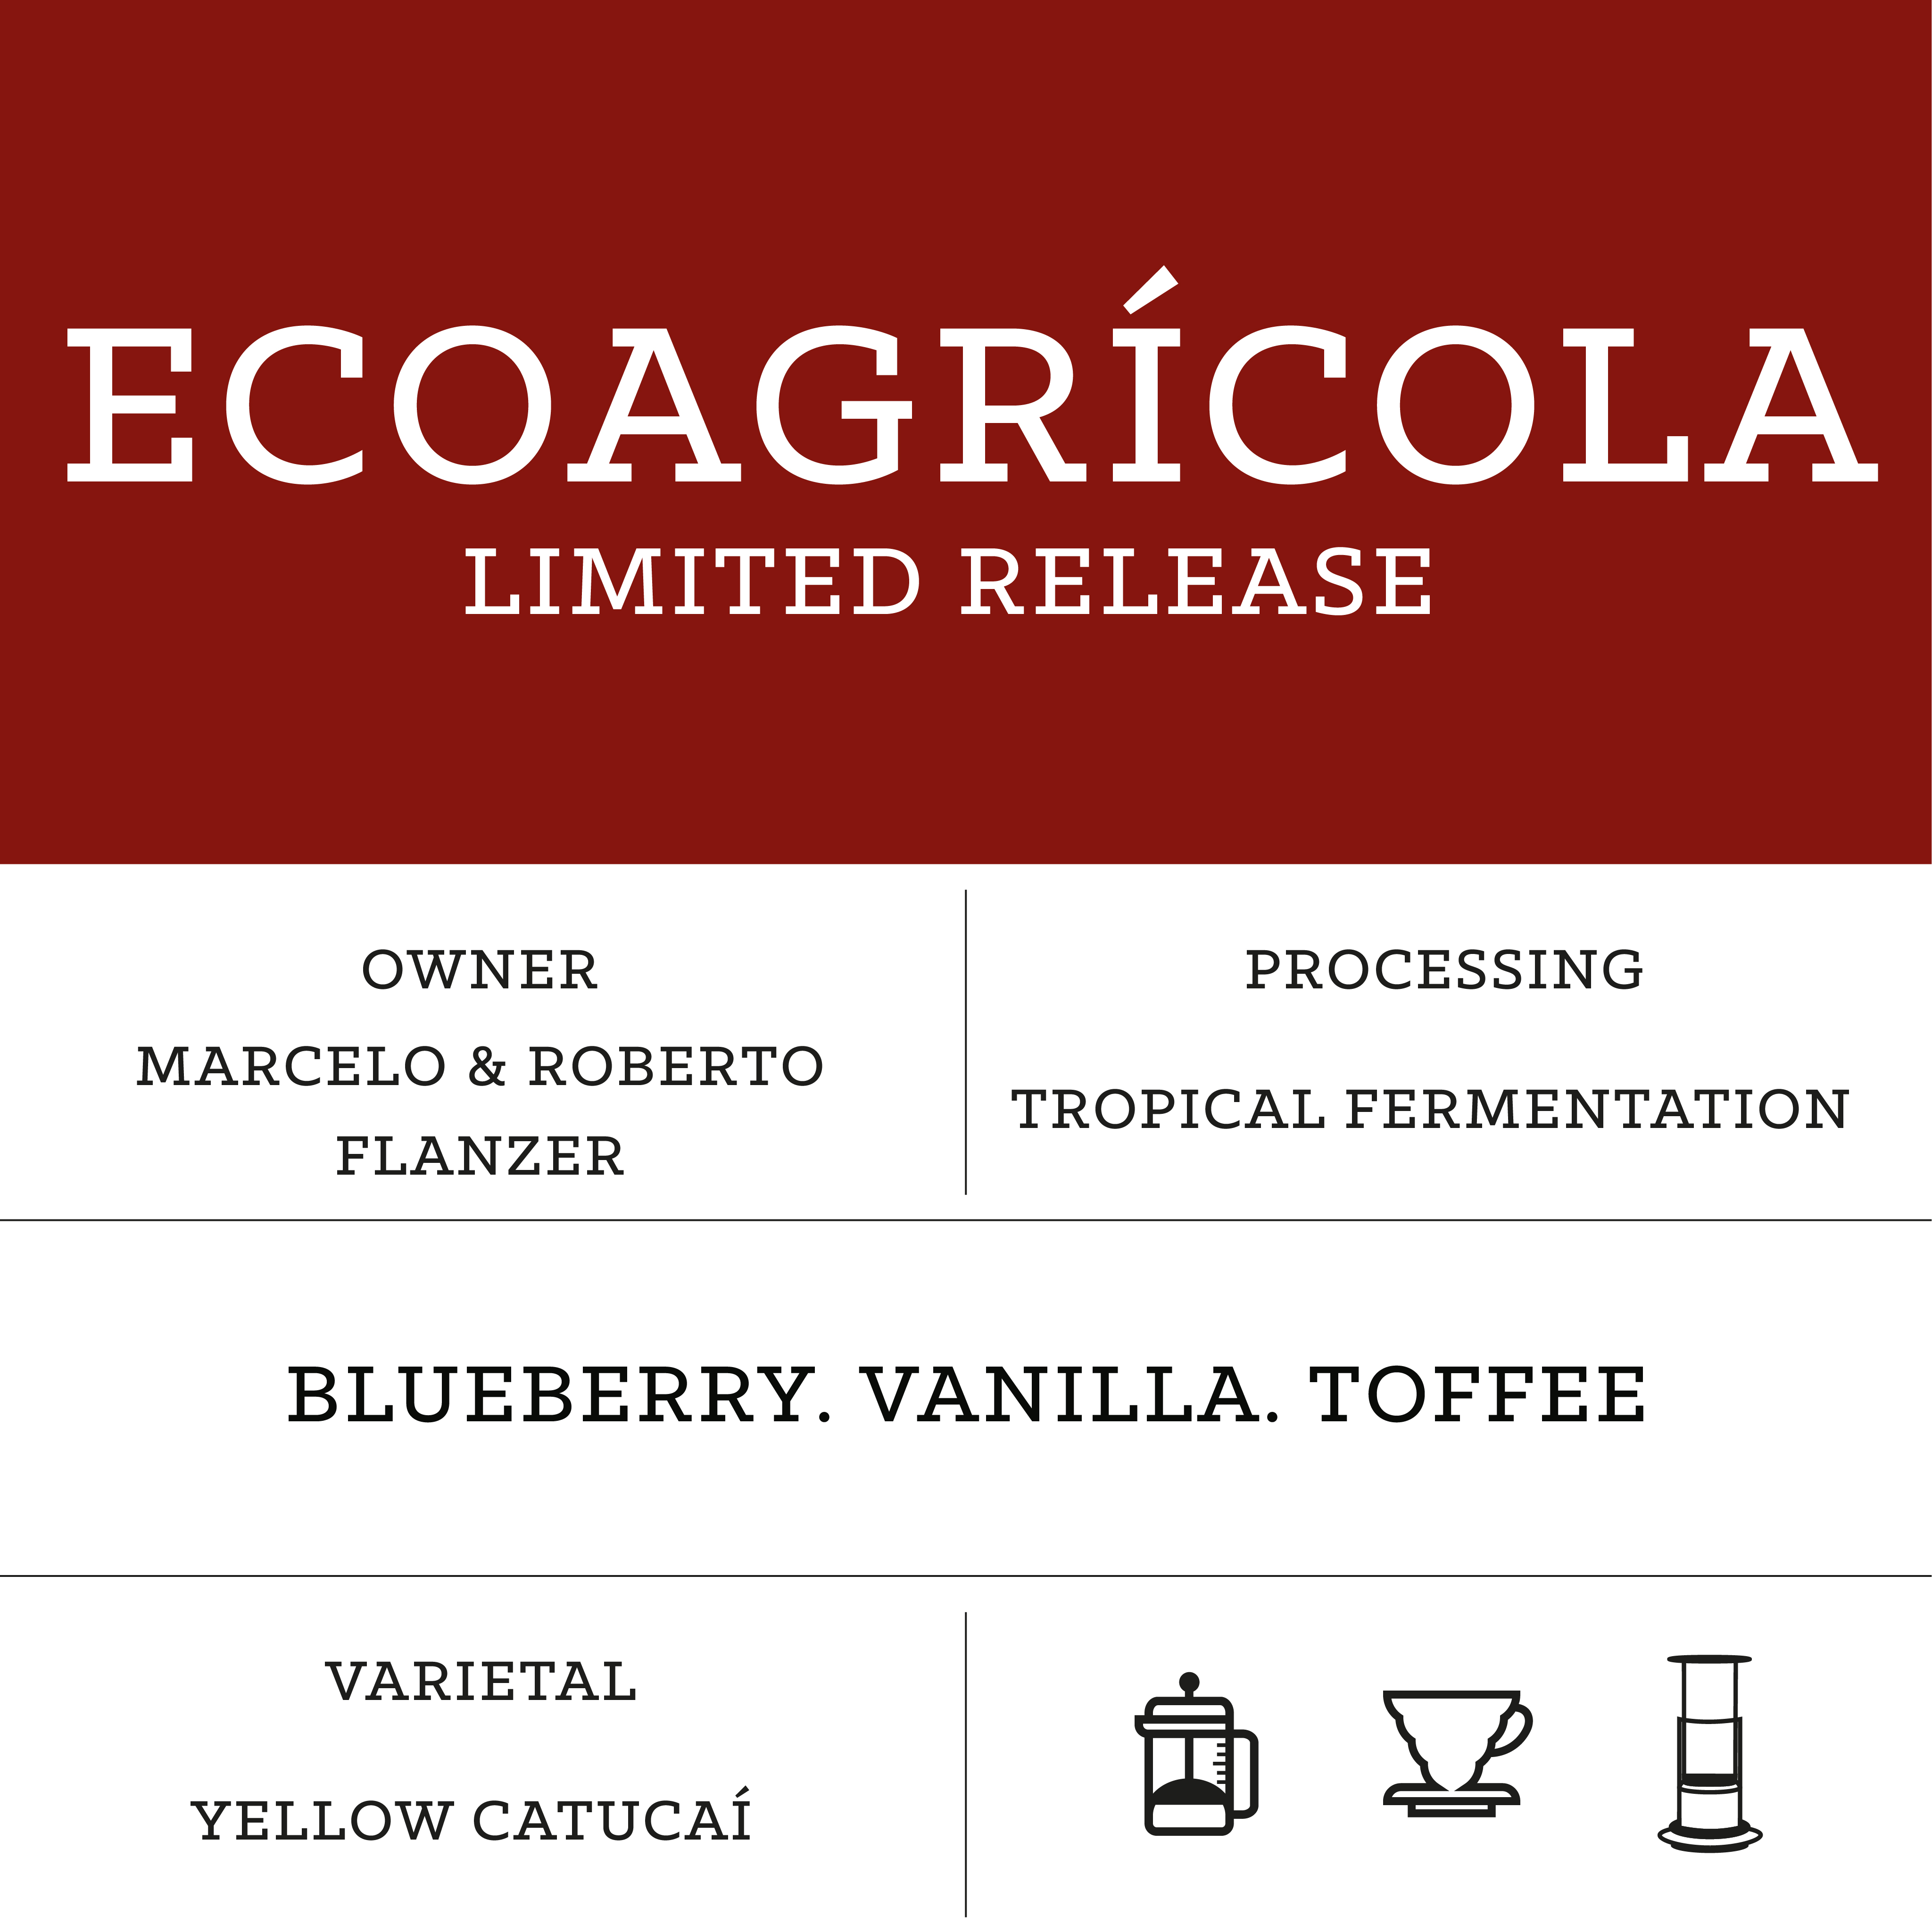 ecoagricola402x-100 via @carvetiicoffee